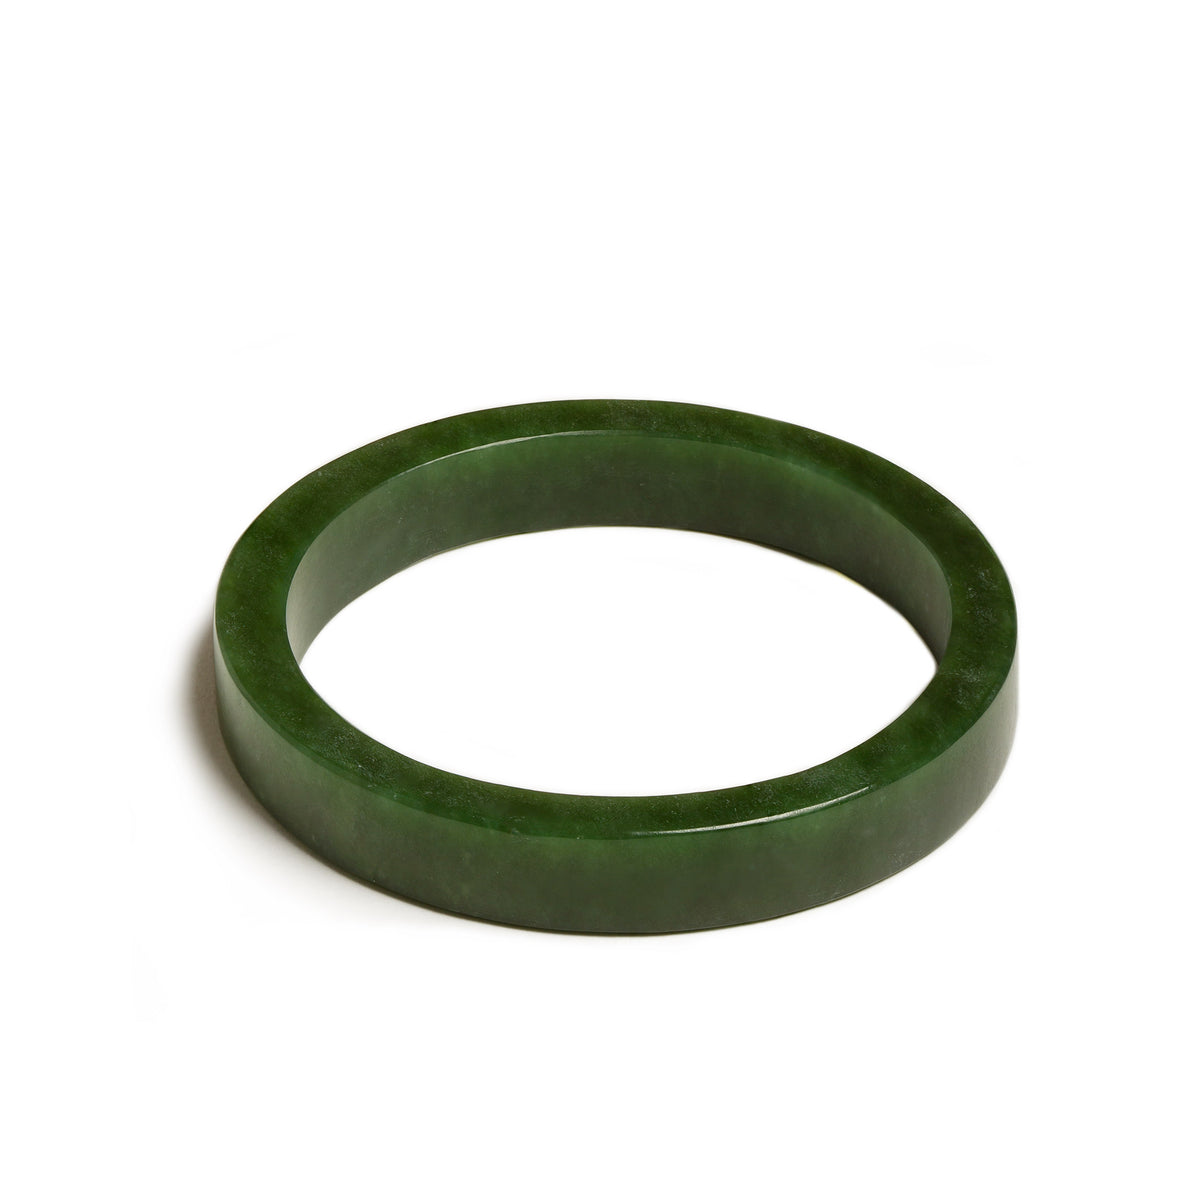 66mm Internal Diameter x 80mm External Diameter / New Zealand Pounamu // RSBAN66SQ-1895